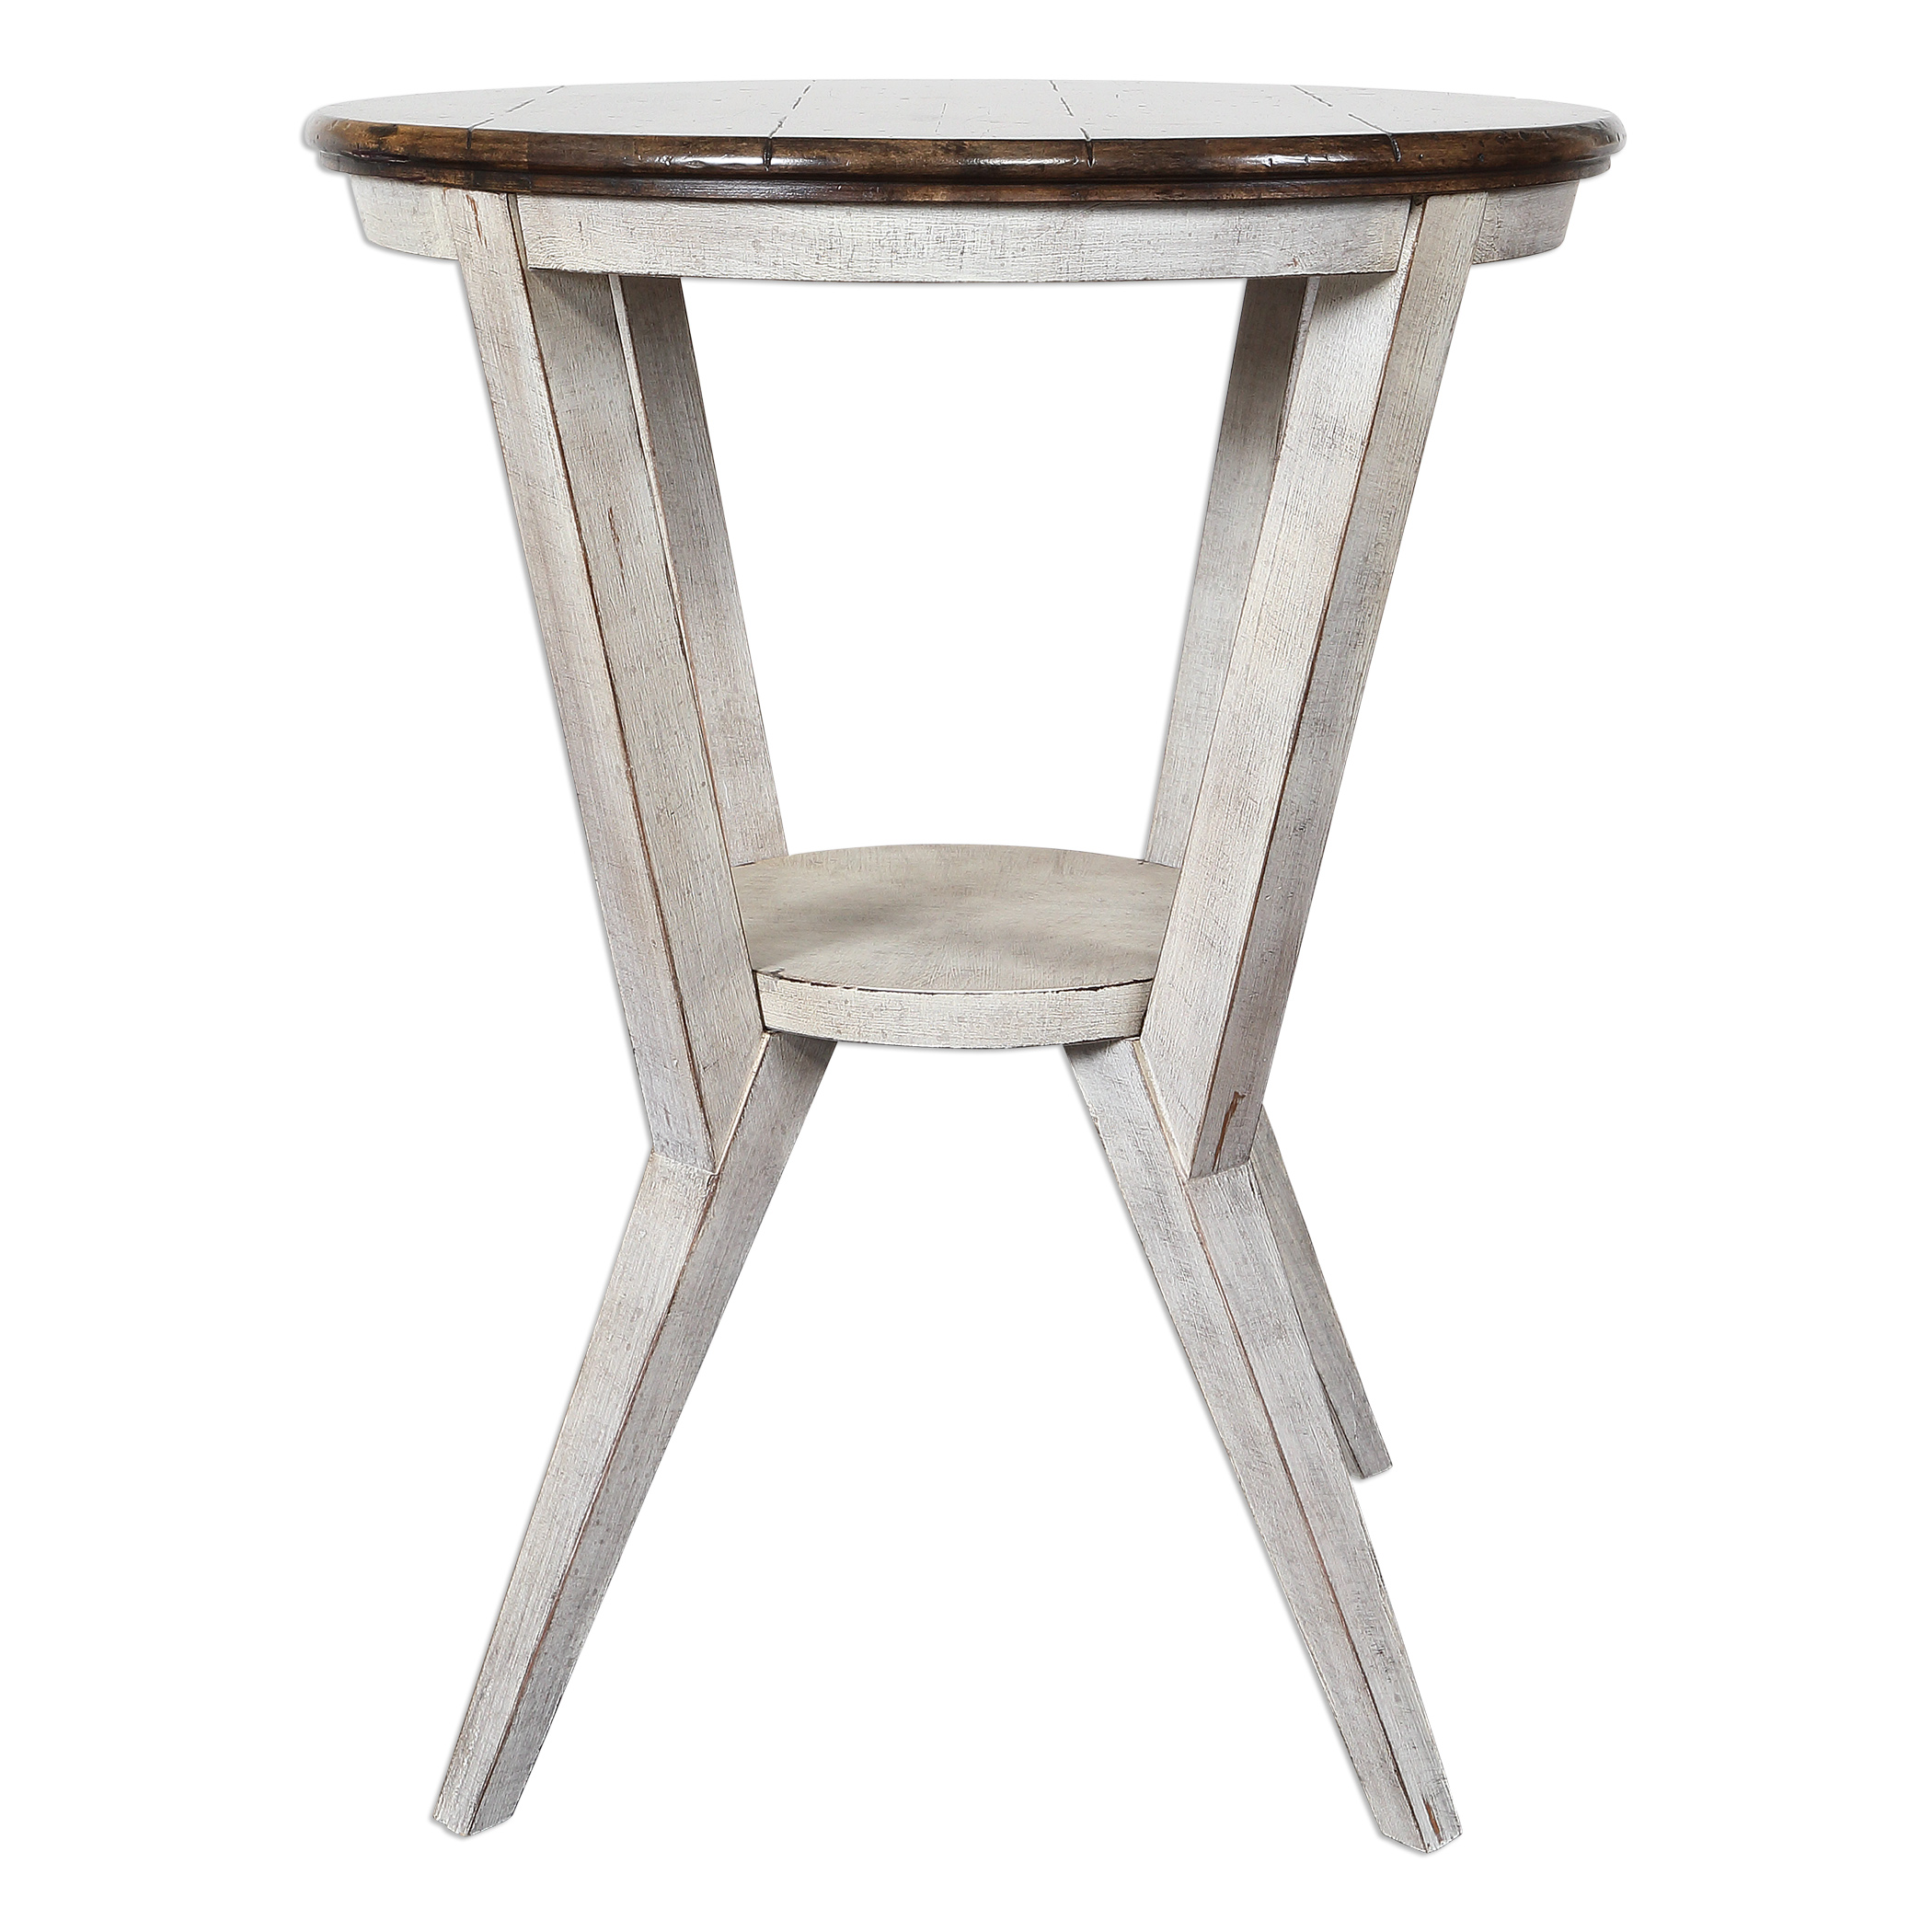 Uttermost Accent Furniture Delino Round Side Table - Item Number: 25915